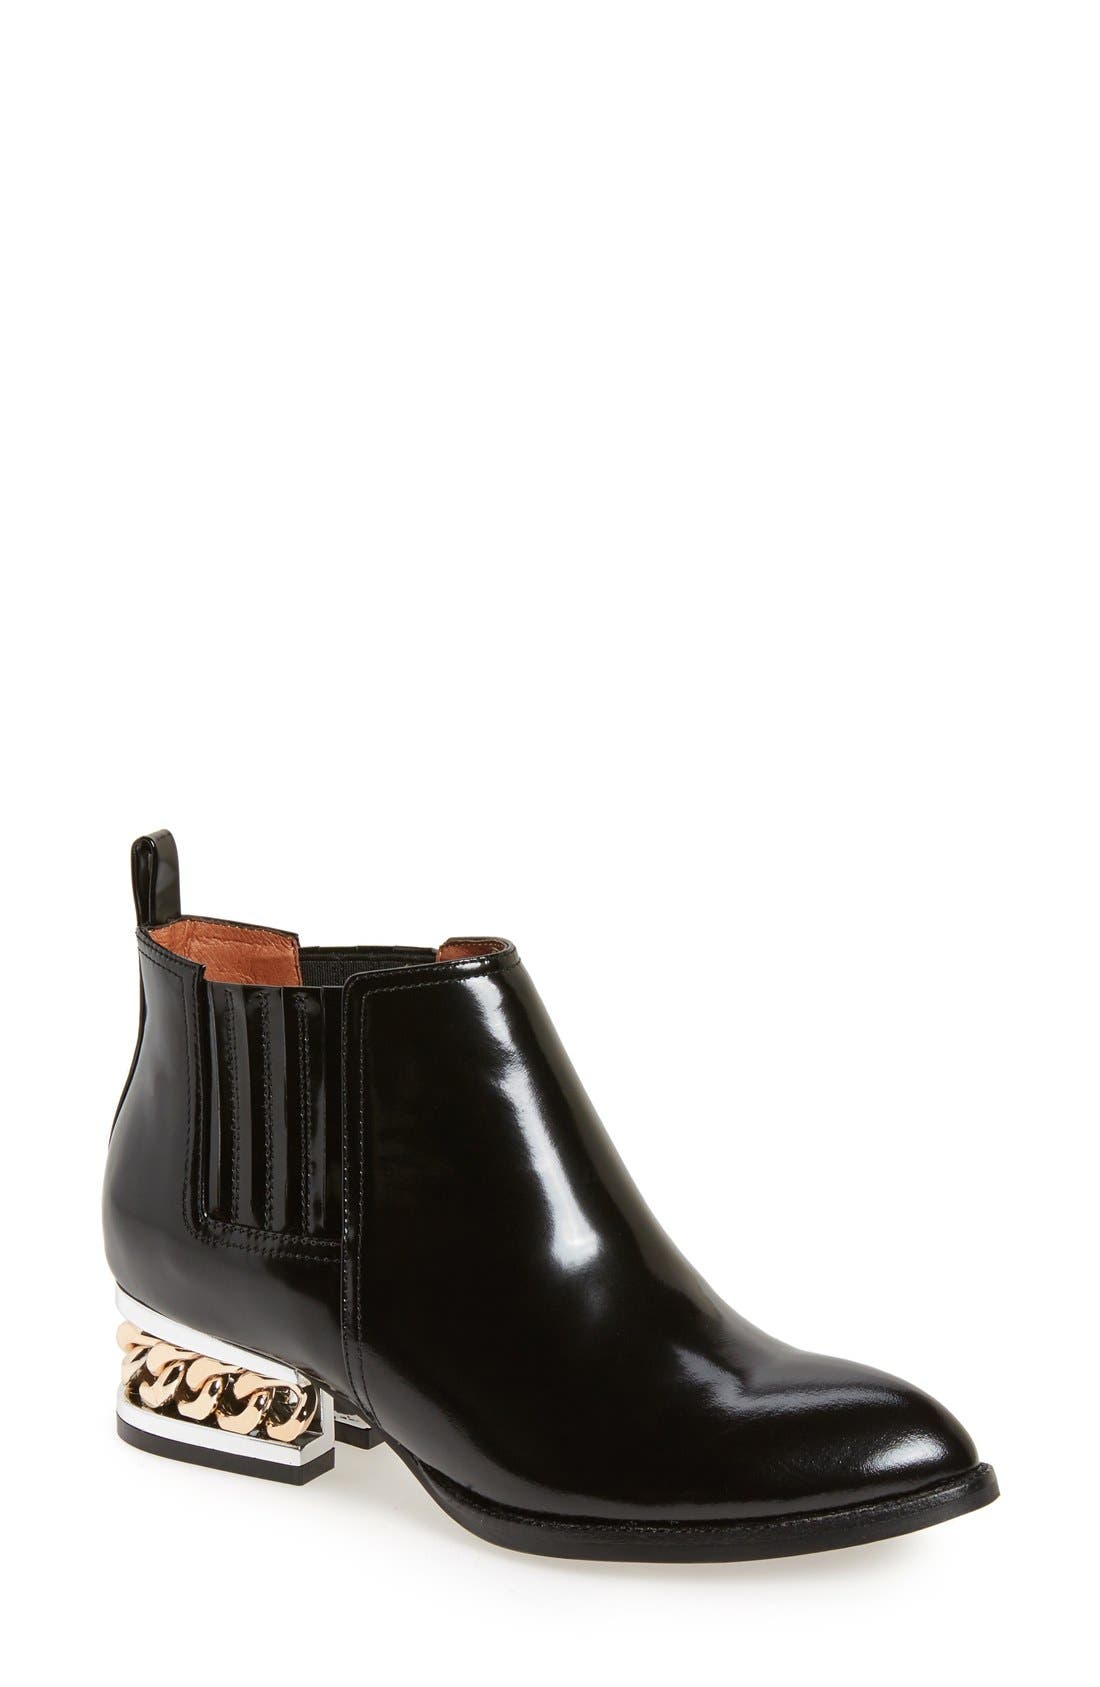 Main Image - Jeffrey Campbell 'Metcalf' Caged Heel Bootie (Women)